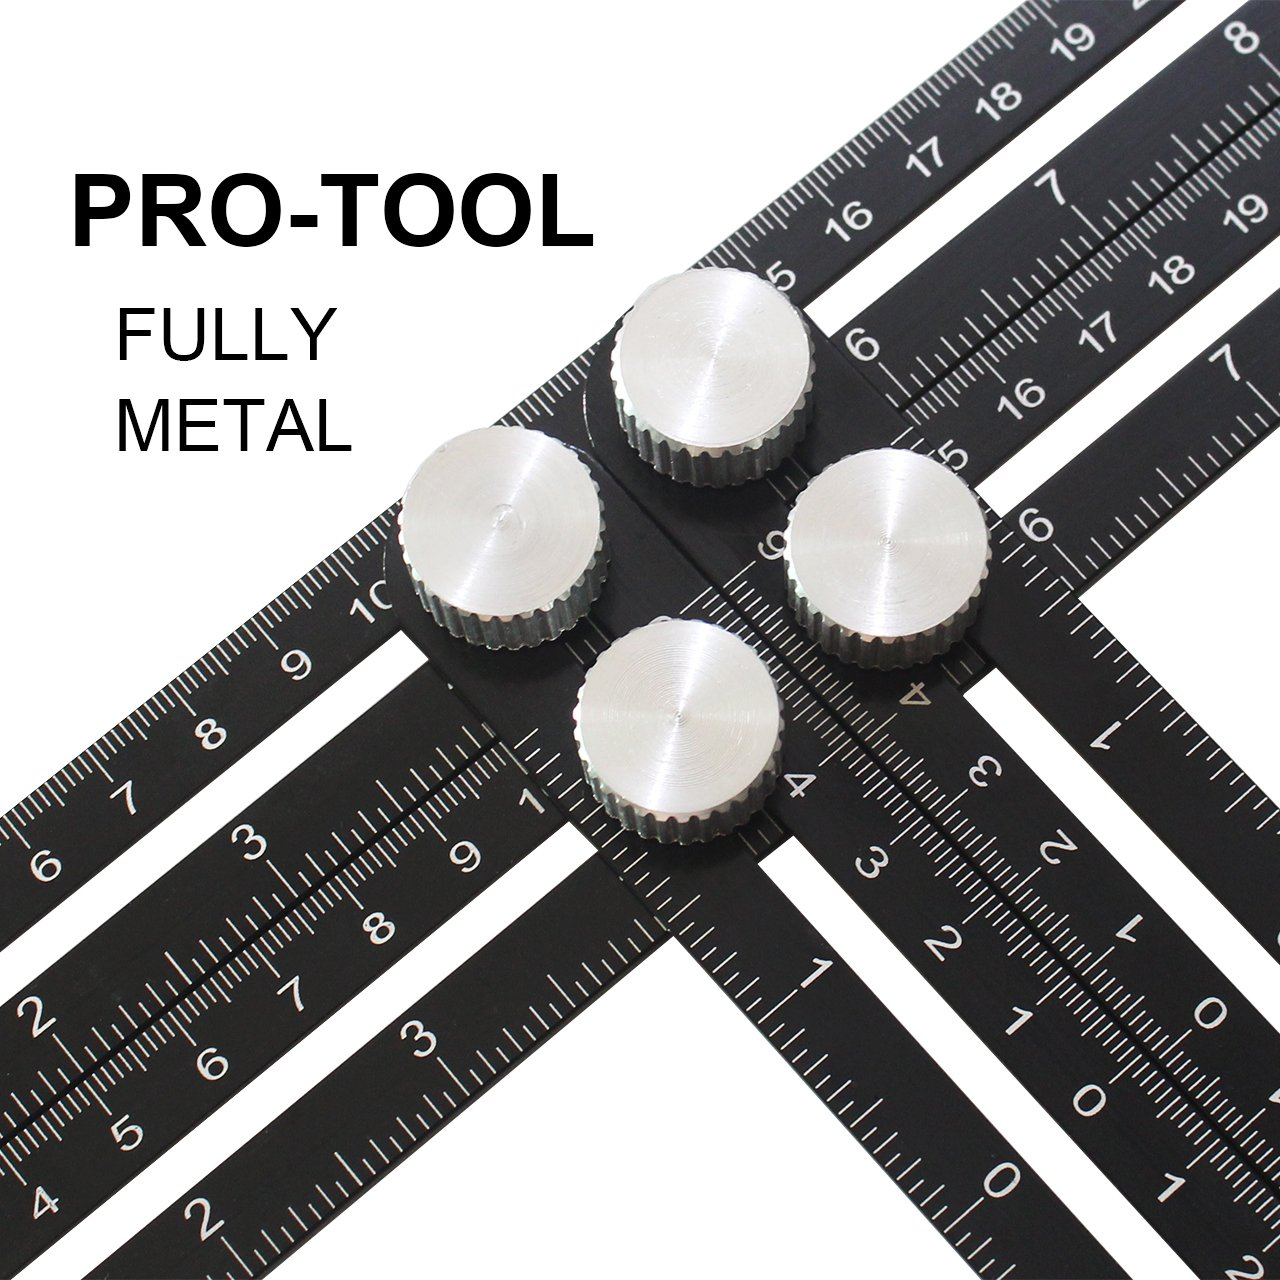 Benvo Upgraded Multi Angle Measuring Ruler Full Metal Template Tool Ultra Nook Scale Ruler with Level Embedded Metal Bolts Made of Premium Aluminum Alloy for Any DIY Projects